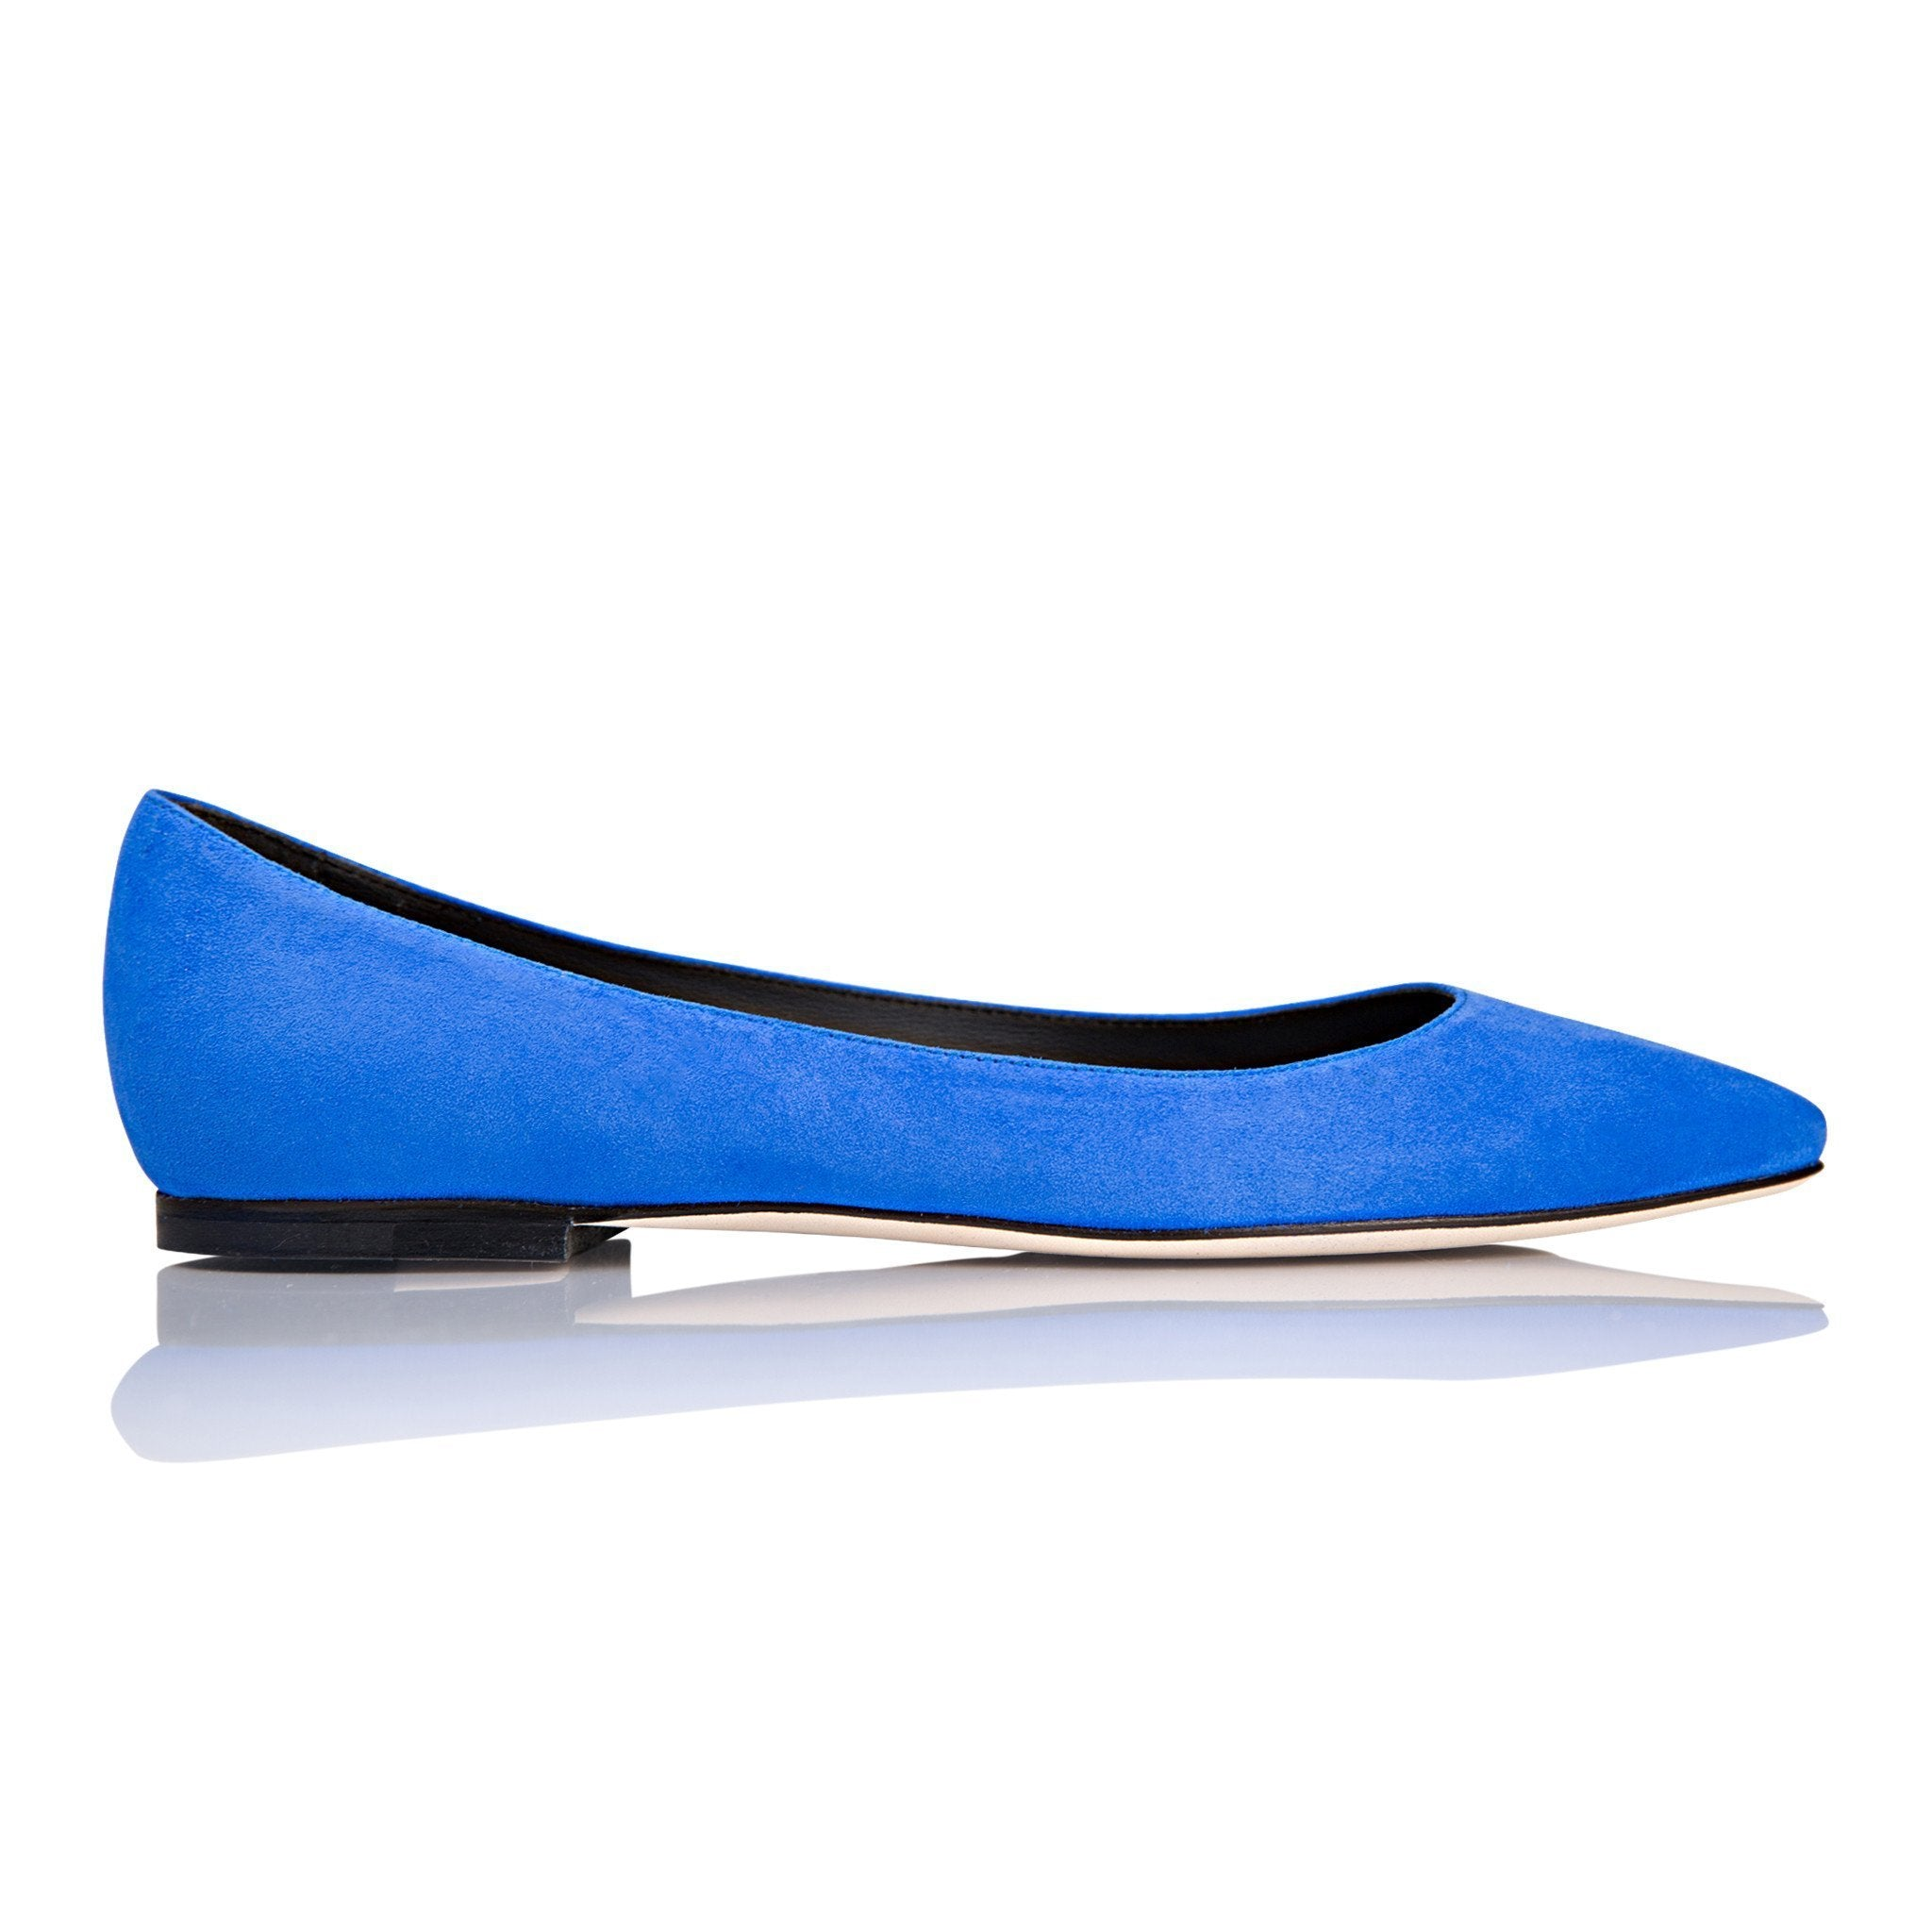 SIENA - Velukid Cobalt, VIAJIYU - Women's Hand Made Sustainable Luxury Shoes. Made in Italy. Made to Order.